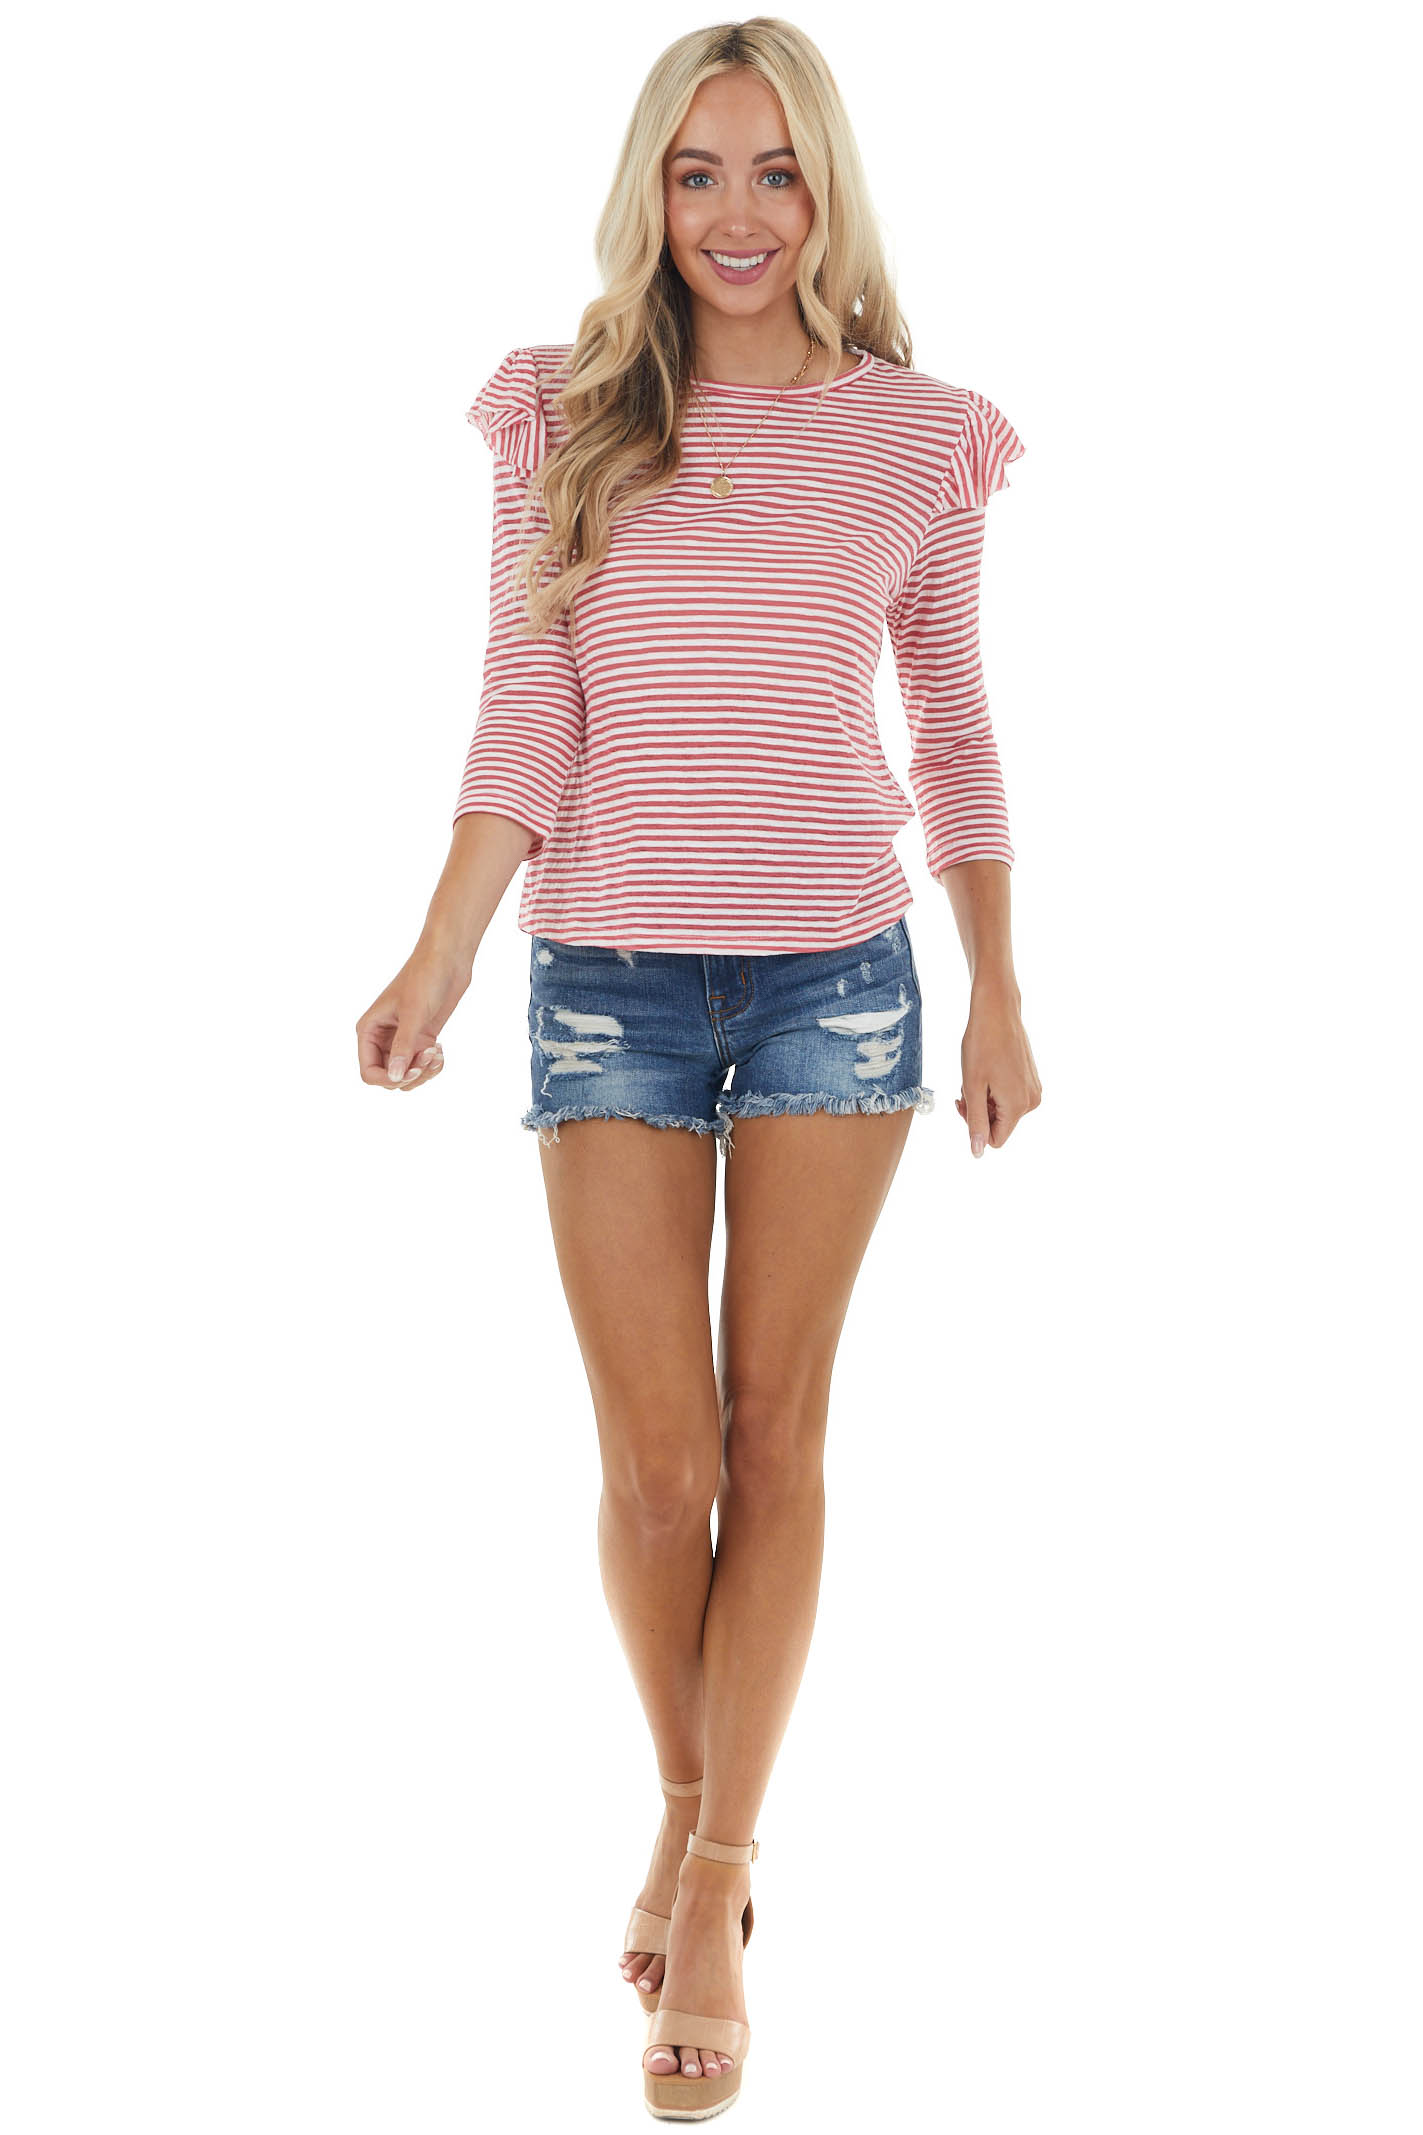 Ruby and Ivory Striped 3/4 Sleeve Top with Ruffled Detail